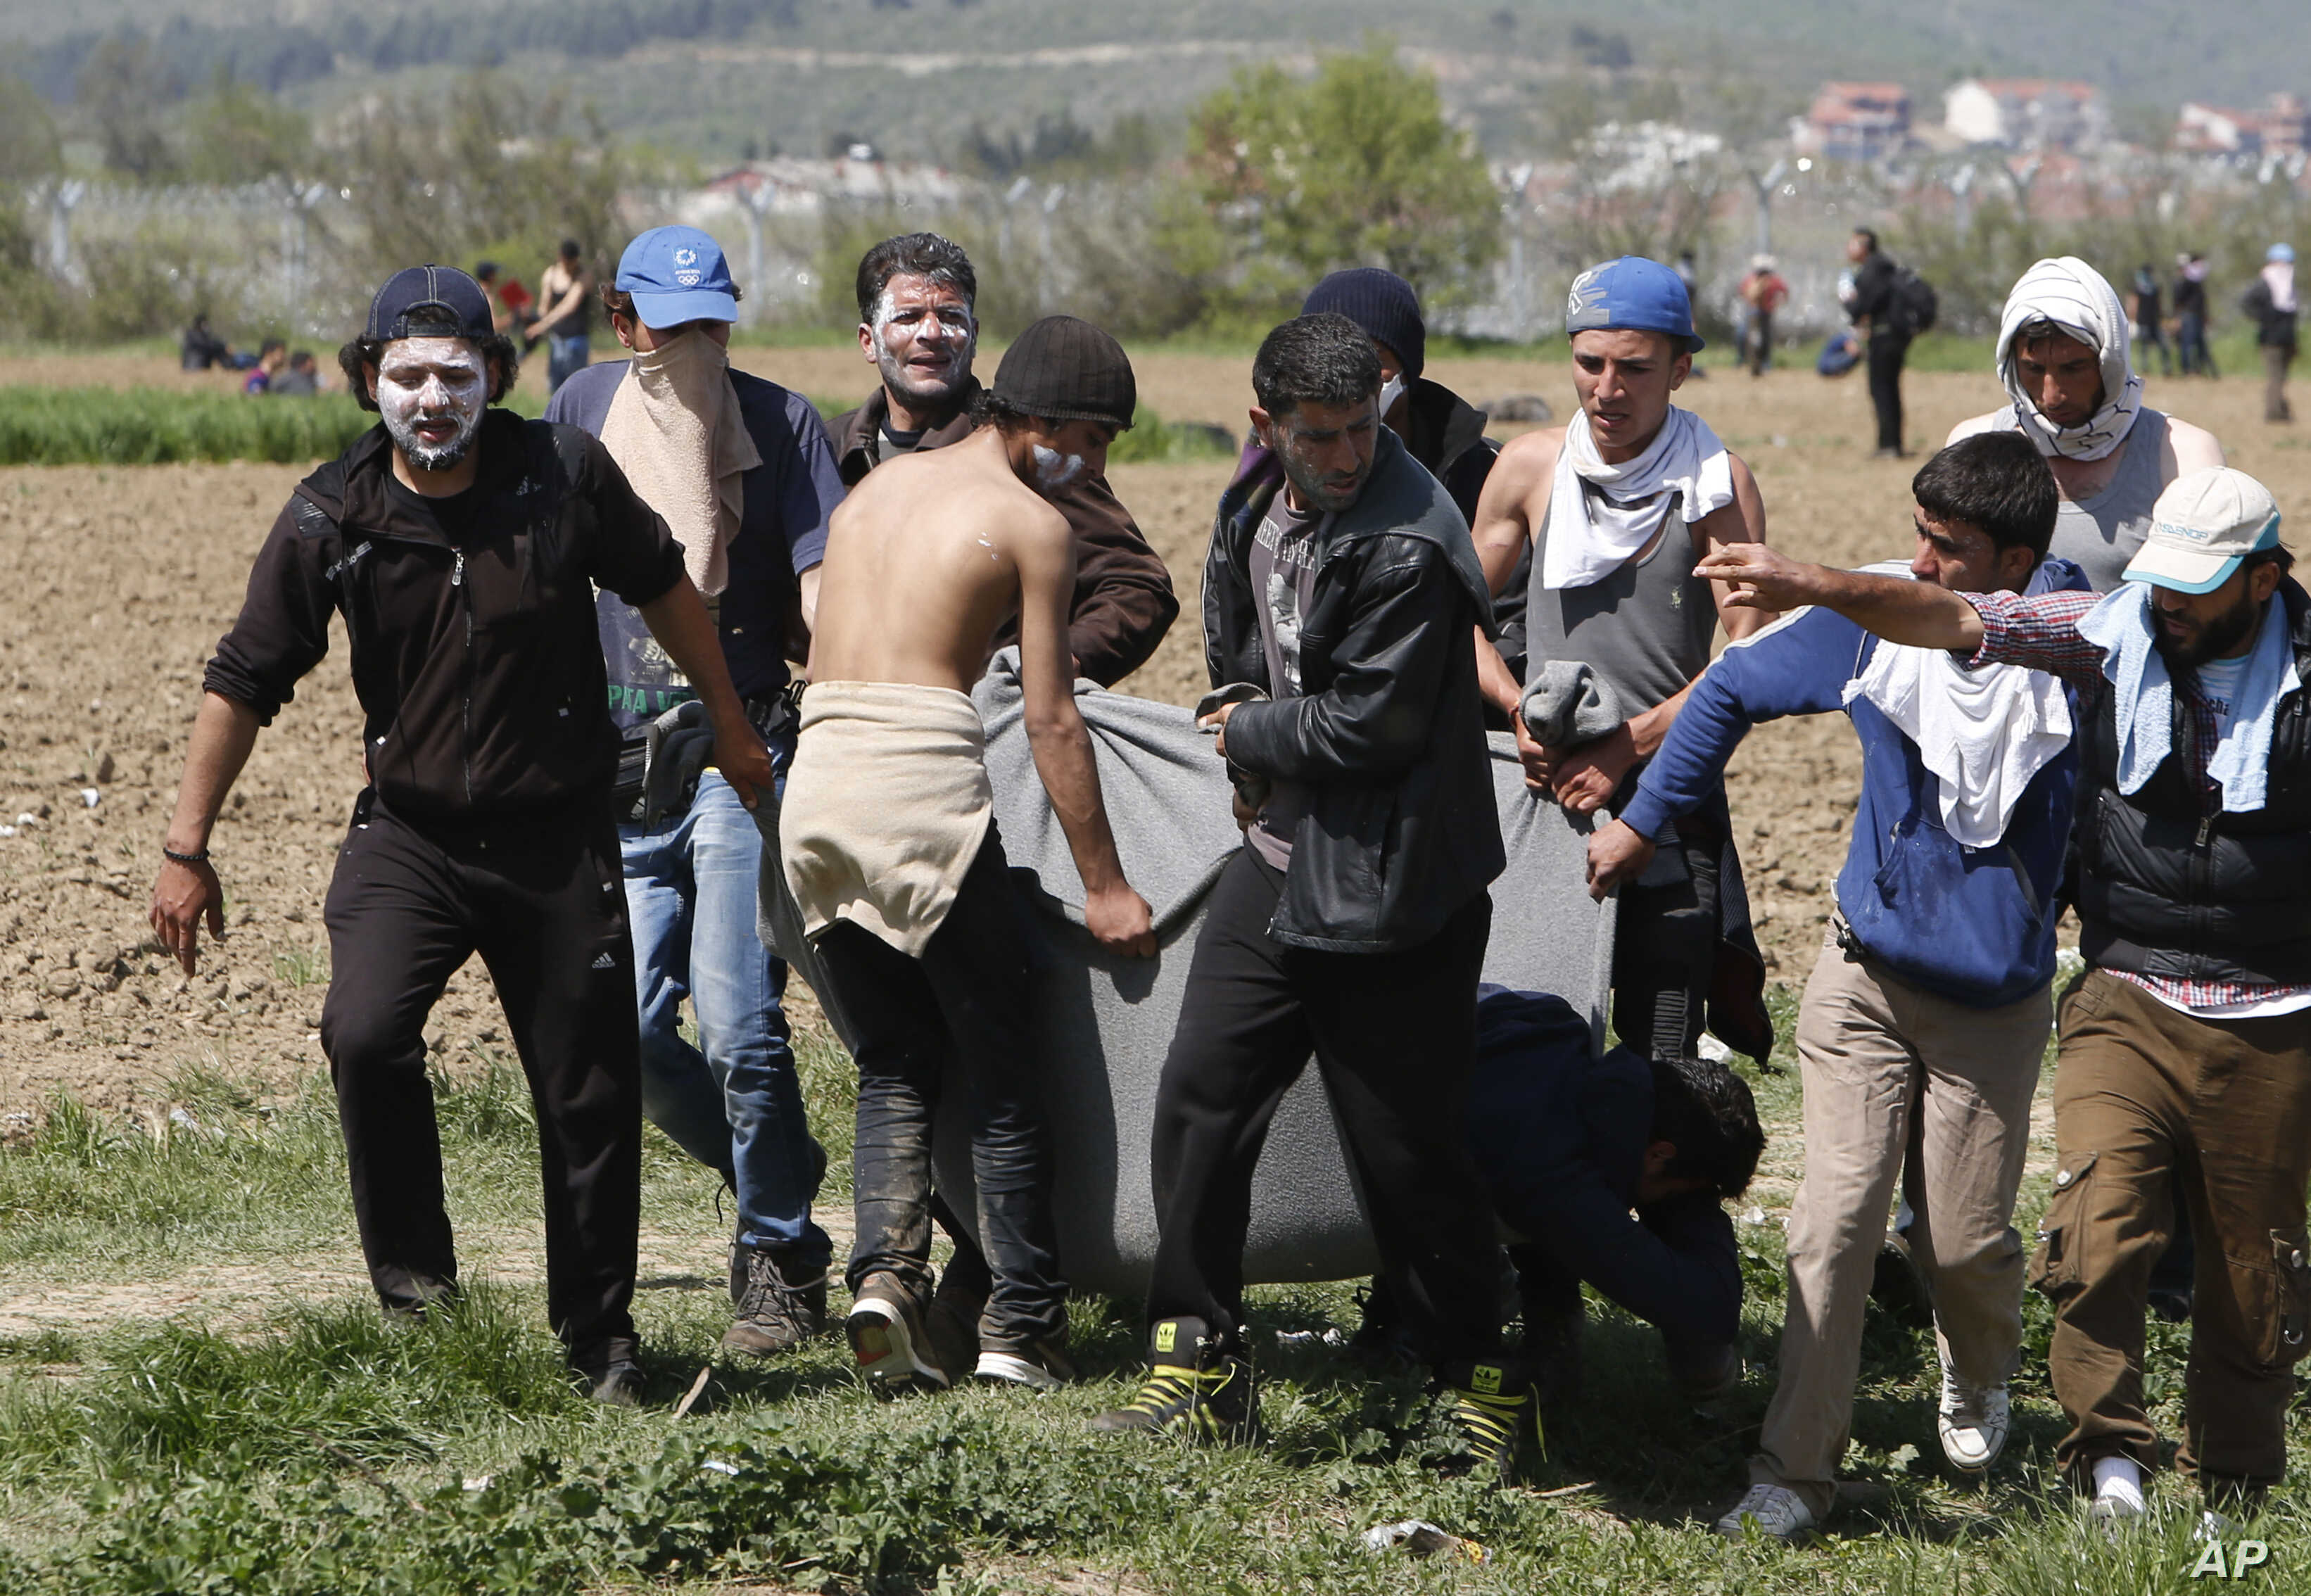 Migrants carry a wounded man in a blanket during a protest at the northern Greek border point of Idomeni, Greece, April 10, 2016.